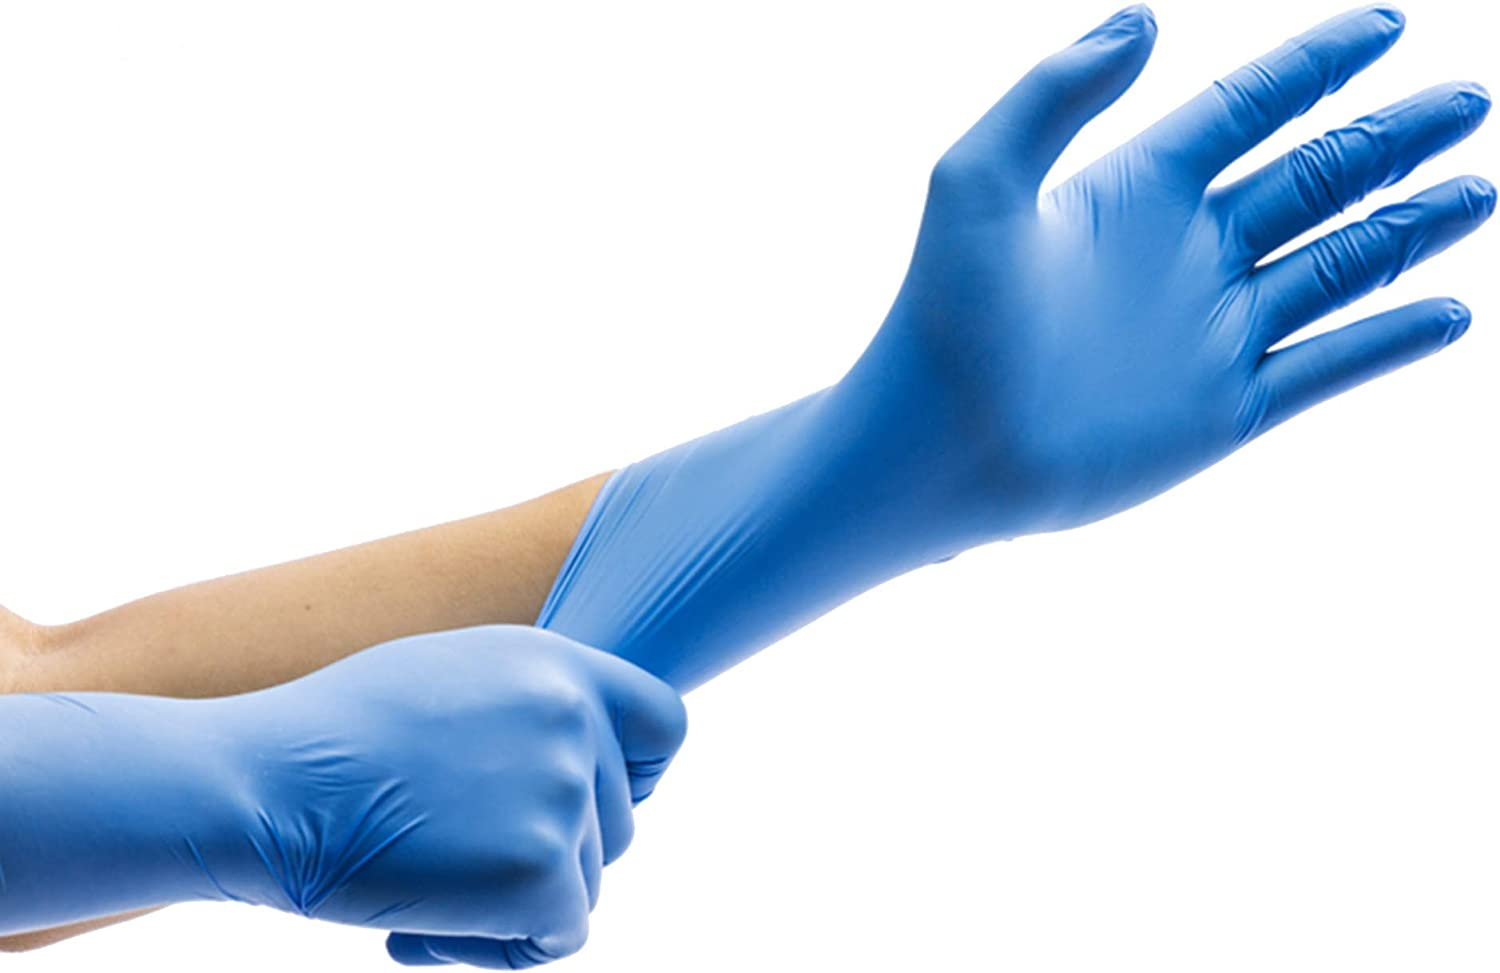 Steelbird Disposable Nitrile Gloves Hand Protection Rubber Glove for  Hospital, Clinic, Sanitary & Kitchen (25 Pair, Large 10.5 cm): Amazon.in:  Home Improvement